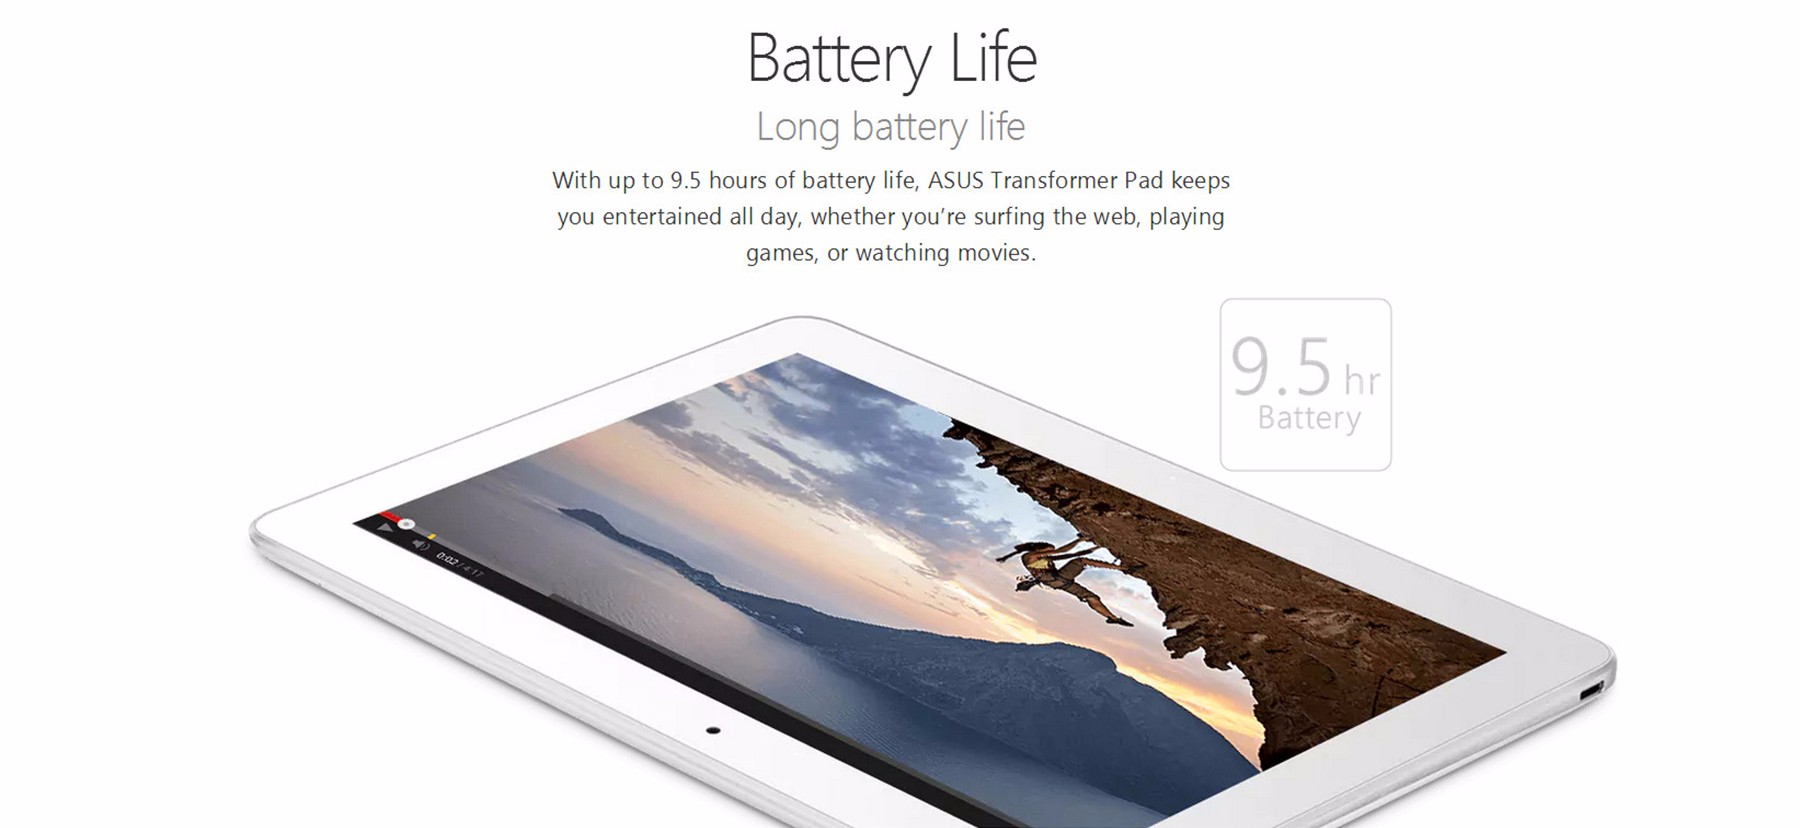 ASUS Transformer Pad TF103CE Tablet PC 10.1 inch IPS LED Backlight Screen Android 5.0 Intel Atom Z3745 64bit Quad Core 1.33GHz 2GB RAM 16GB ROM E-compass Sensor GPS OTG